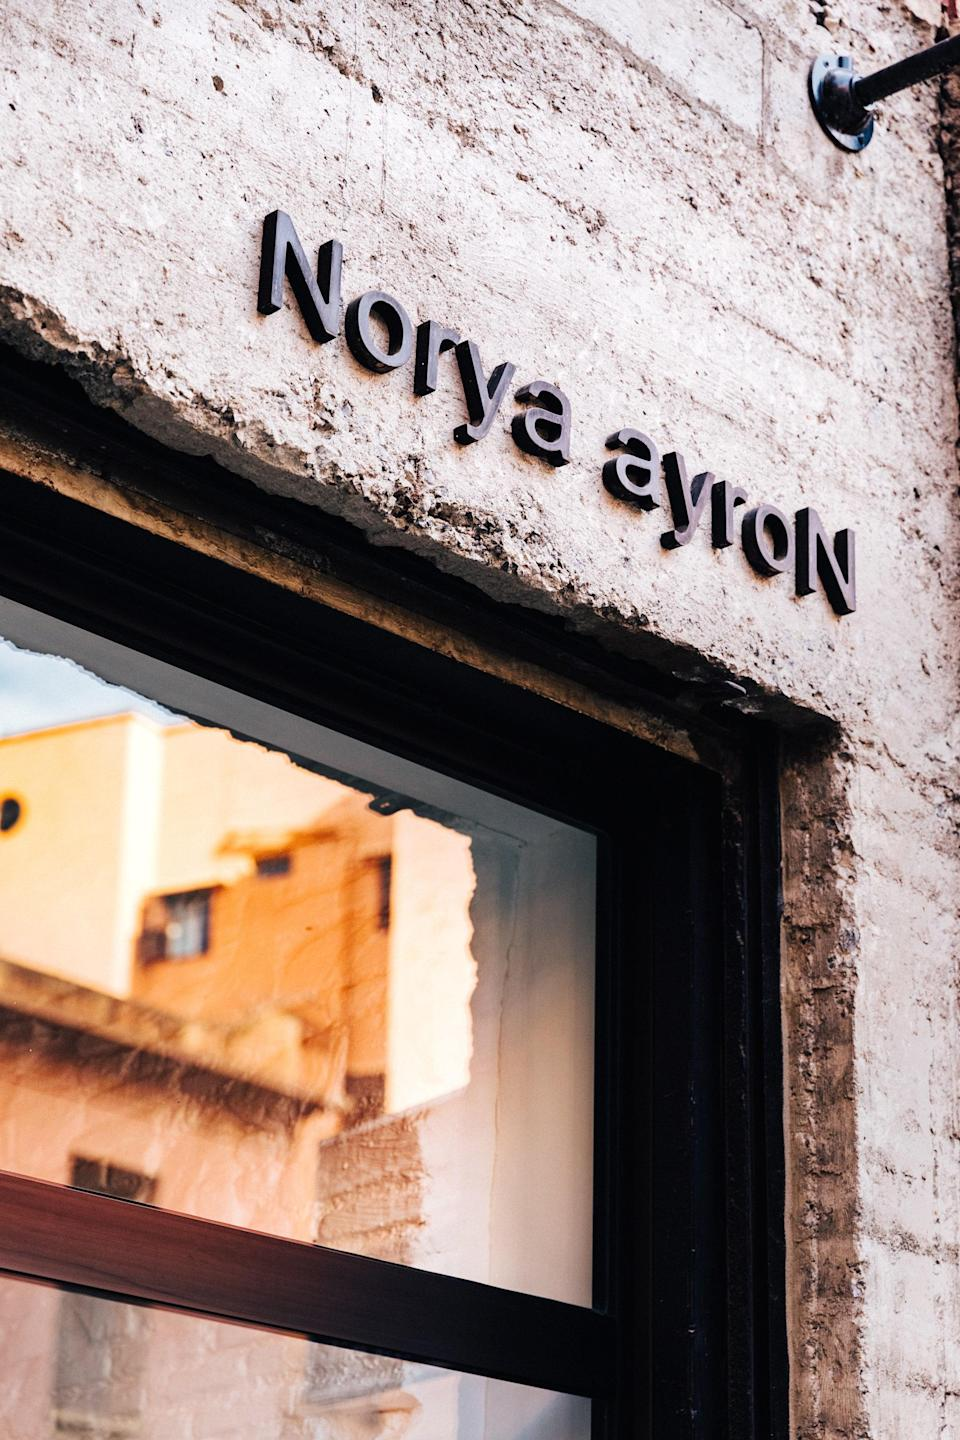 The storefront at Norya Aryon, favorited by A-listers